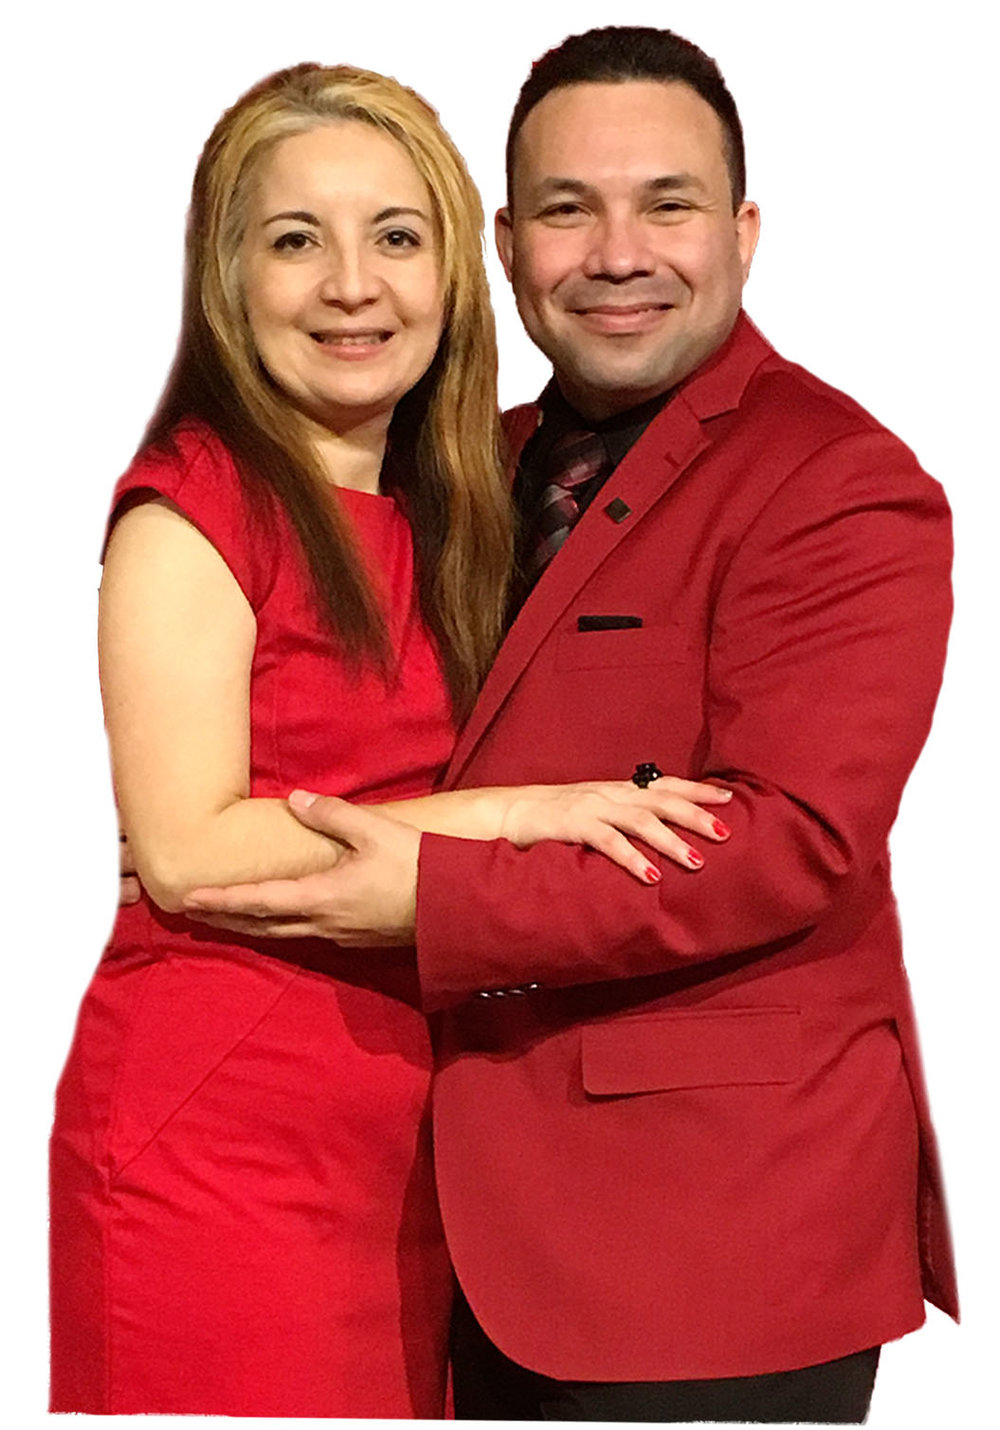 astor Gustavo Carrillo y Pastora Nancy Carrillo.jpg